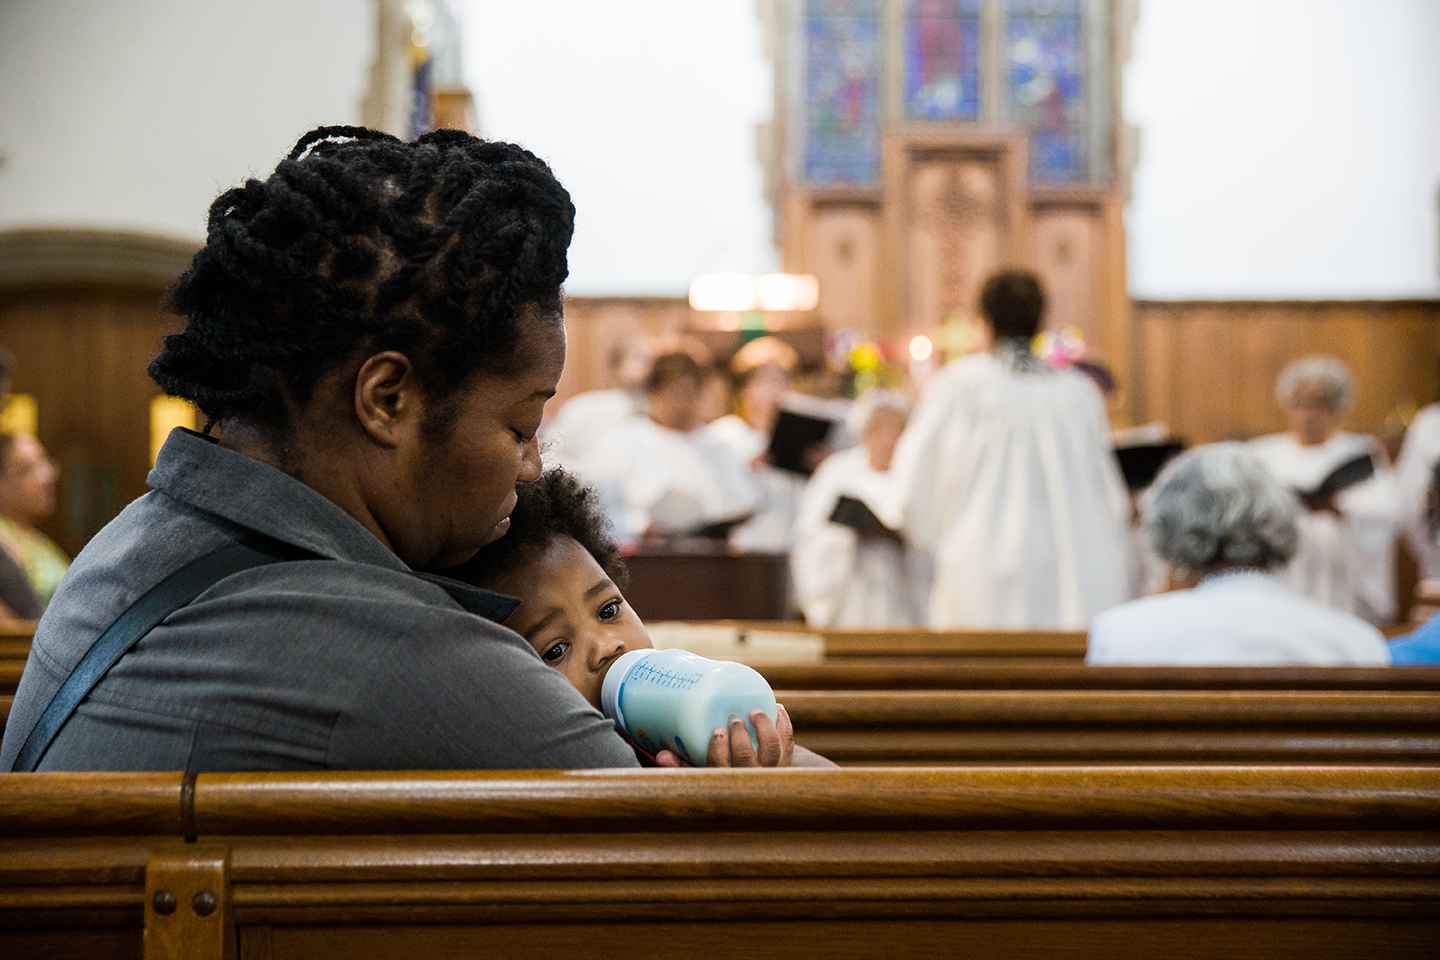 A mother holds her child during a worship service at McKendree UMC in Washington D.C.